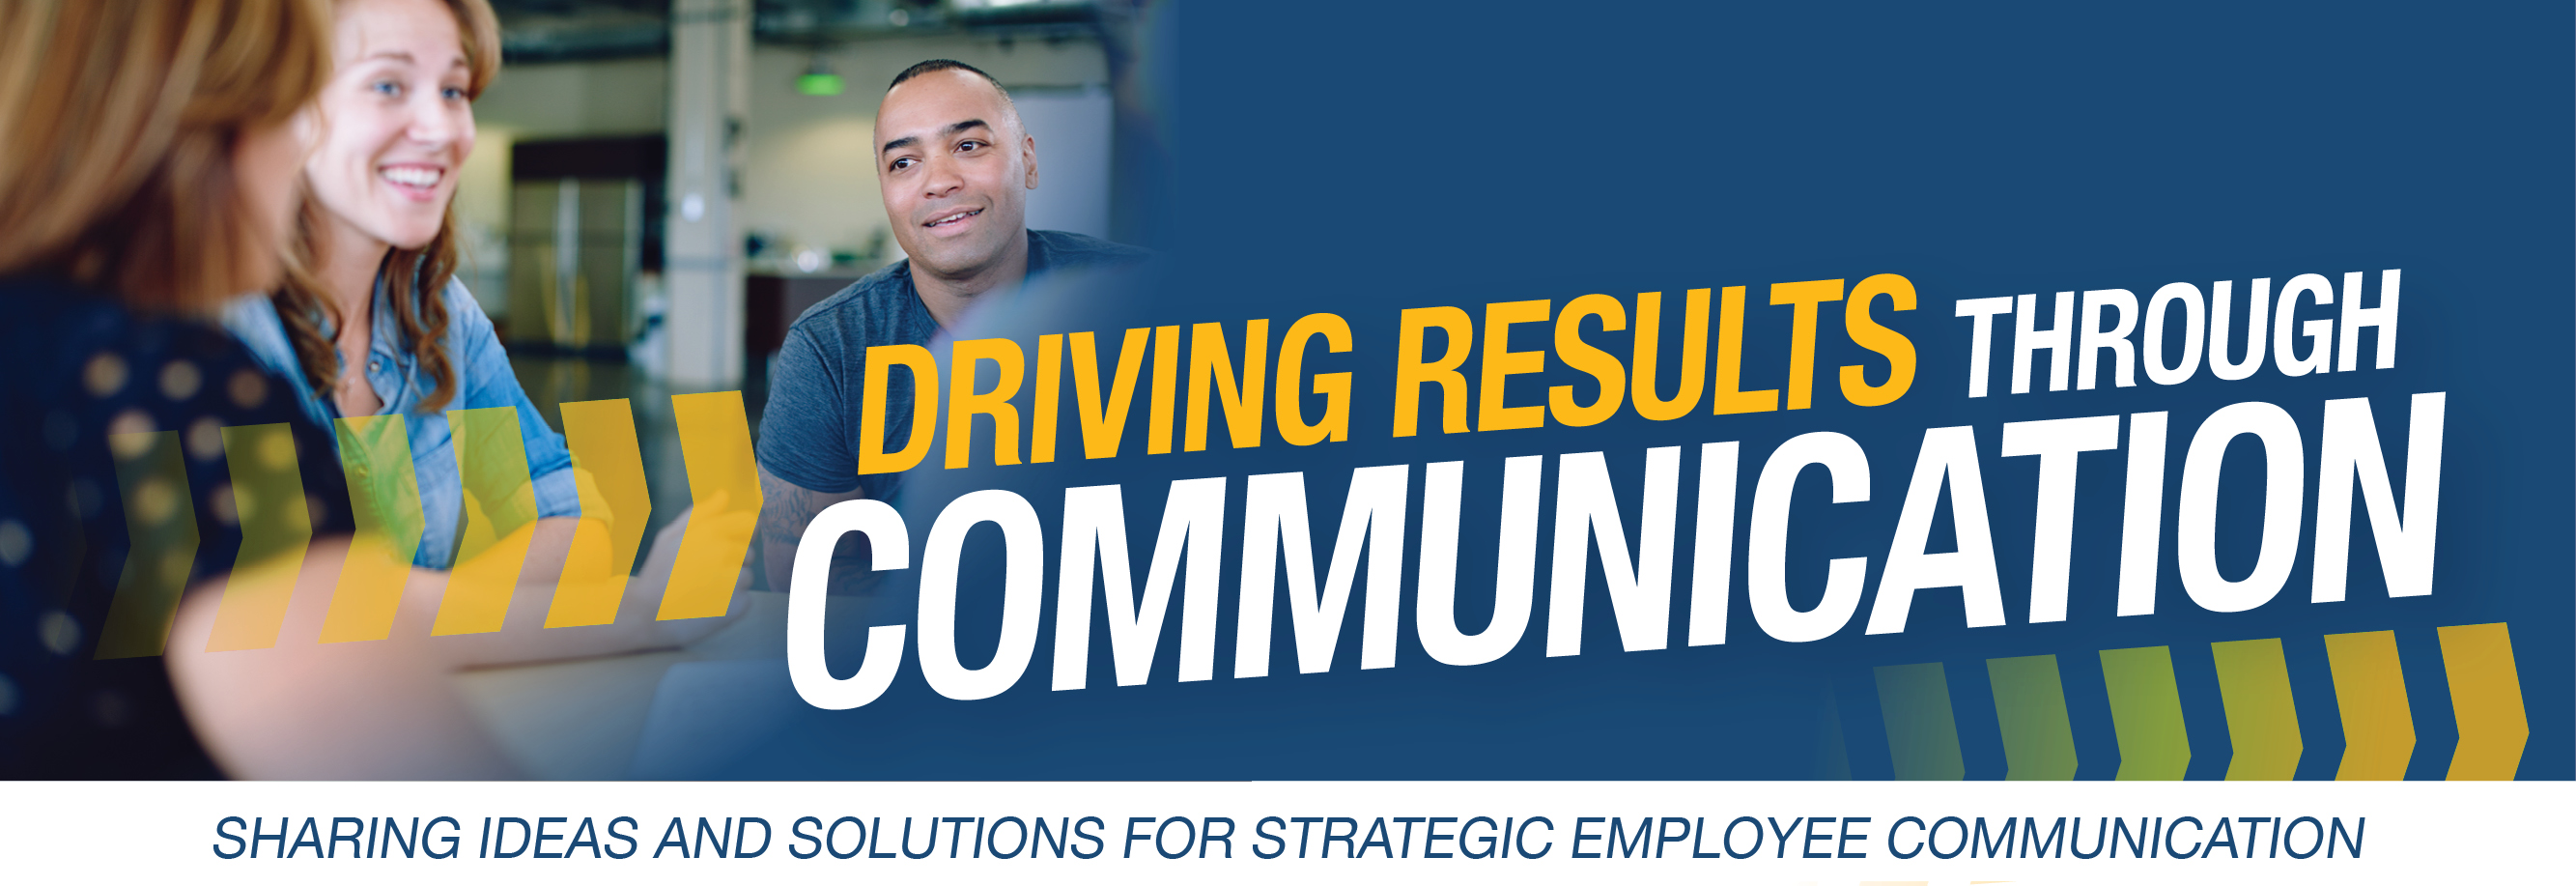 Tip #7 Driving Results Through Communication